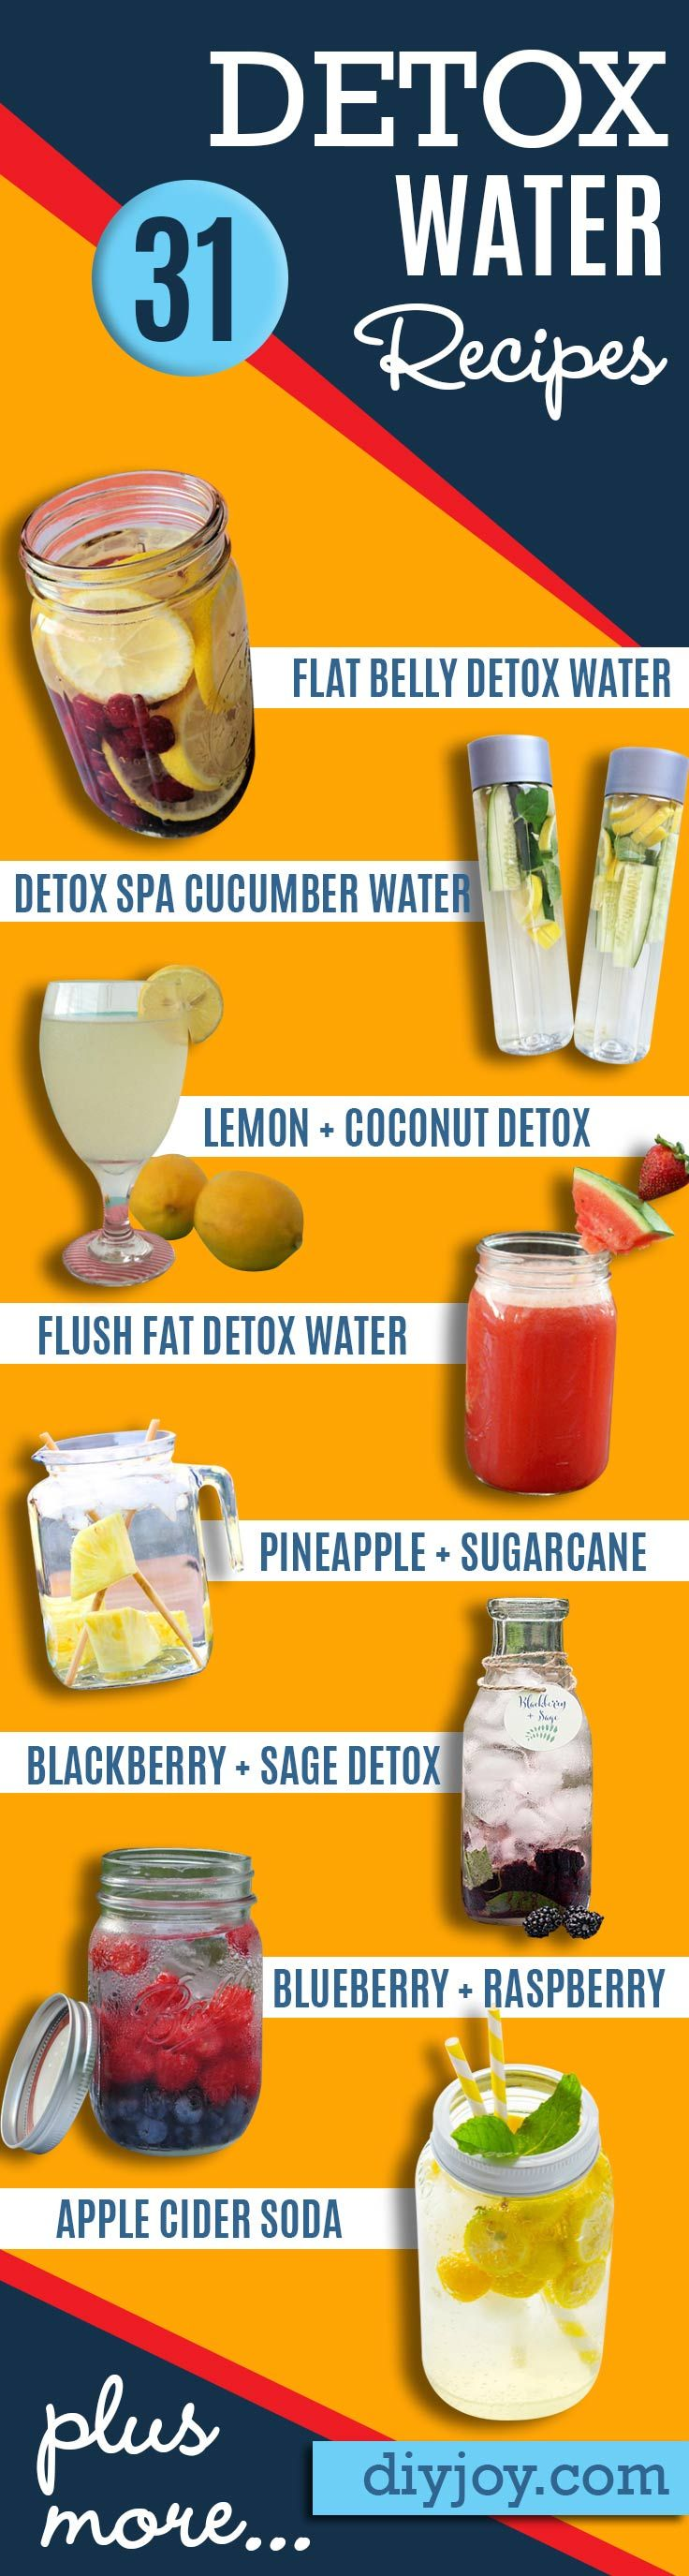 Lose weight fast egg diet